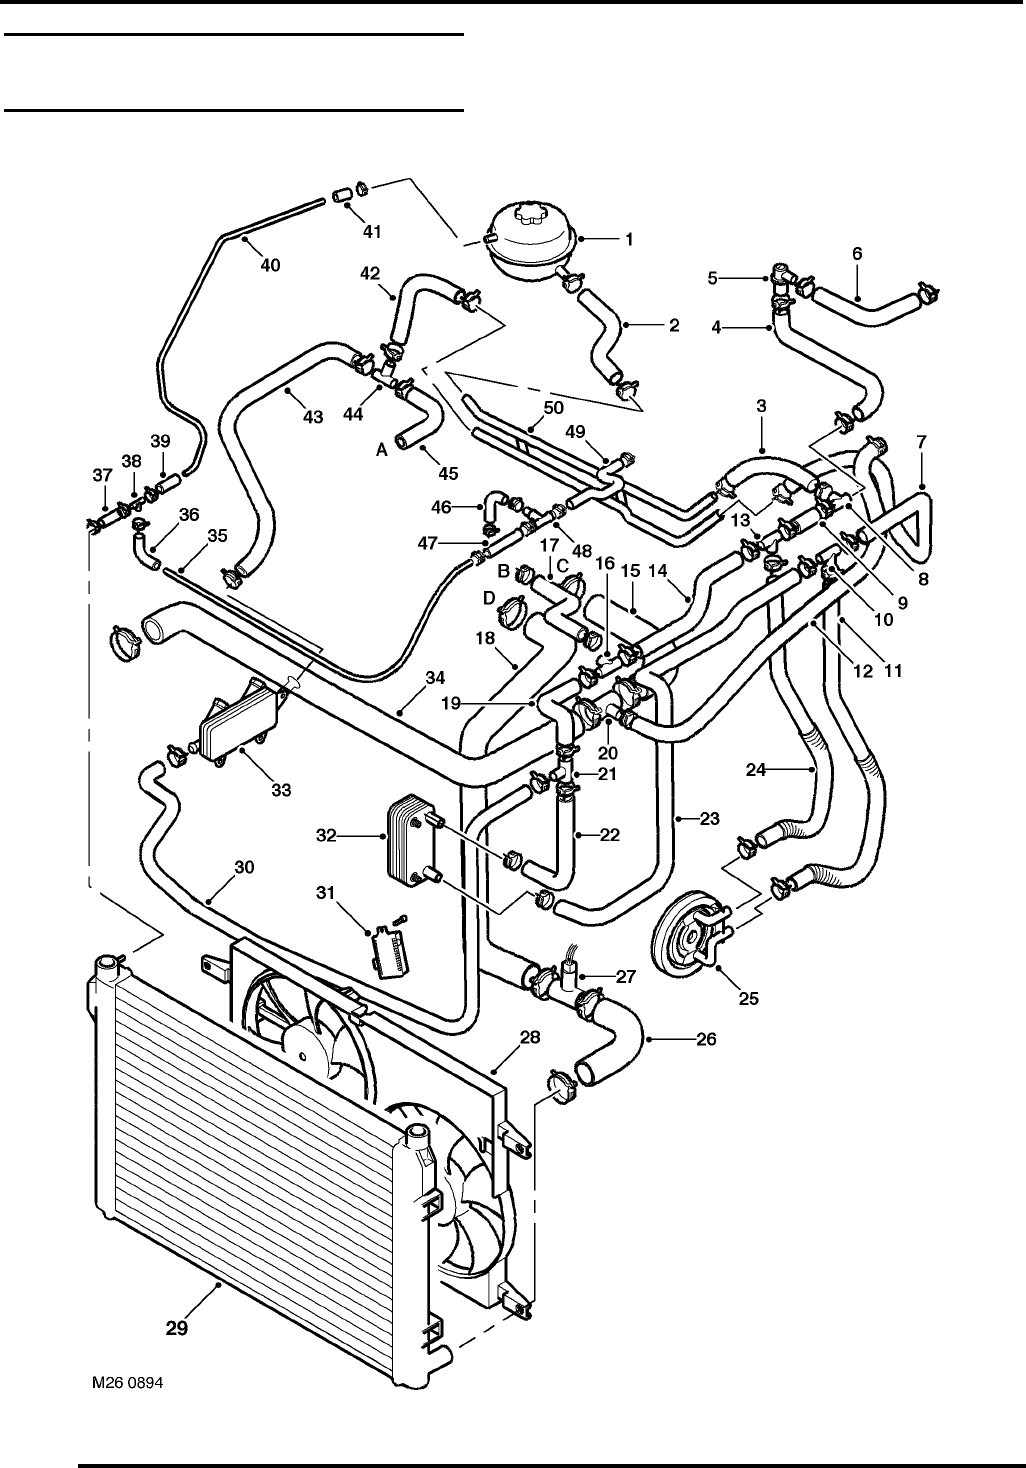 Diagram For A Freelander Engine Diagram Full